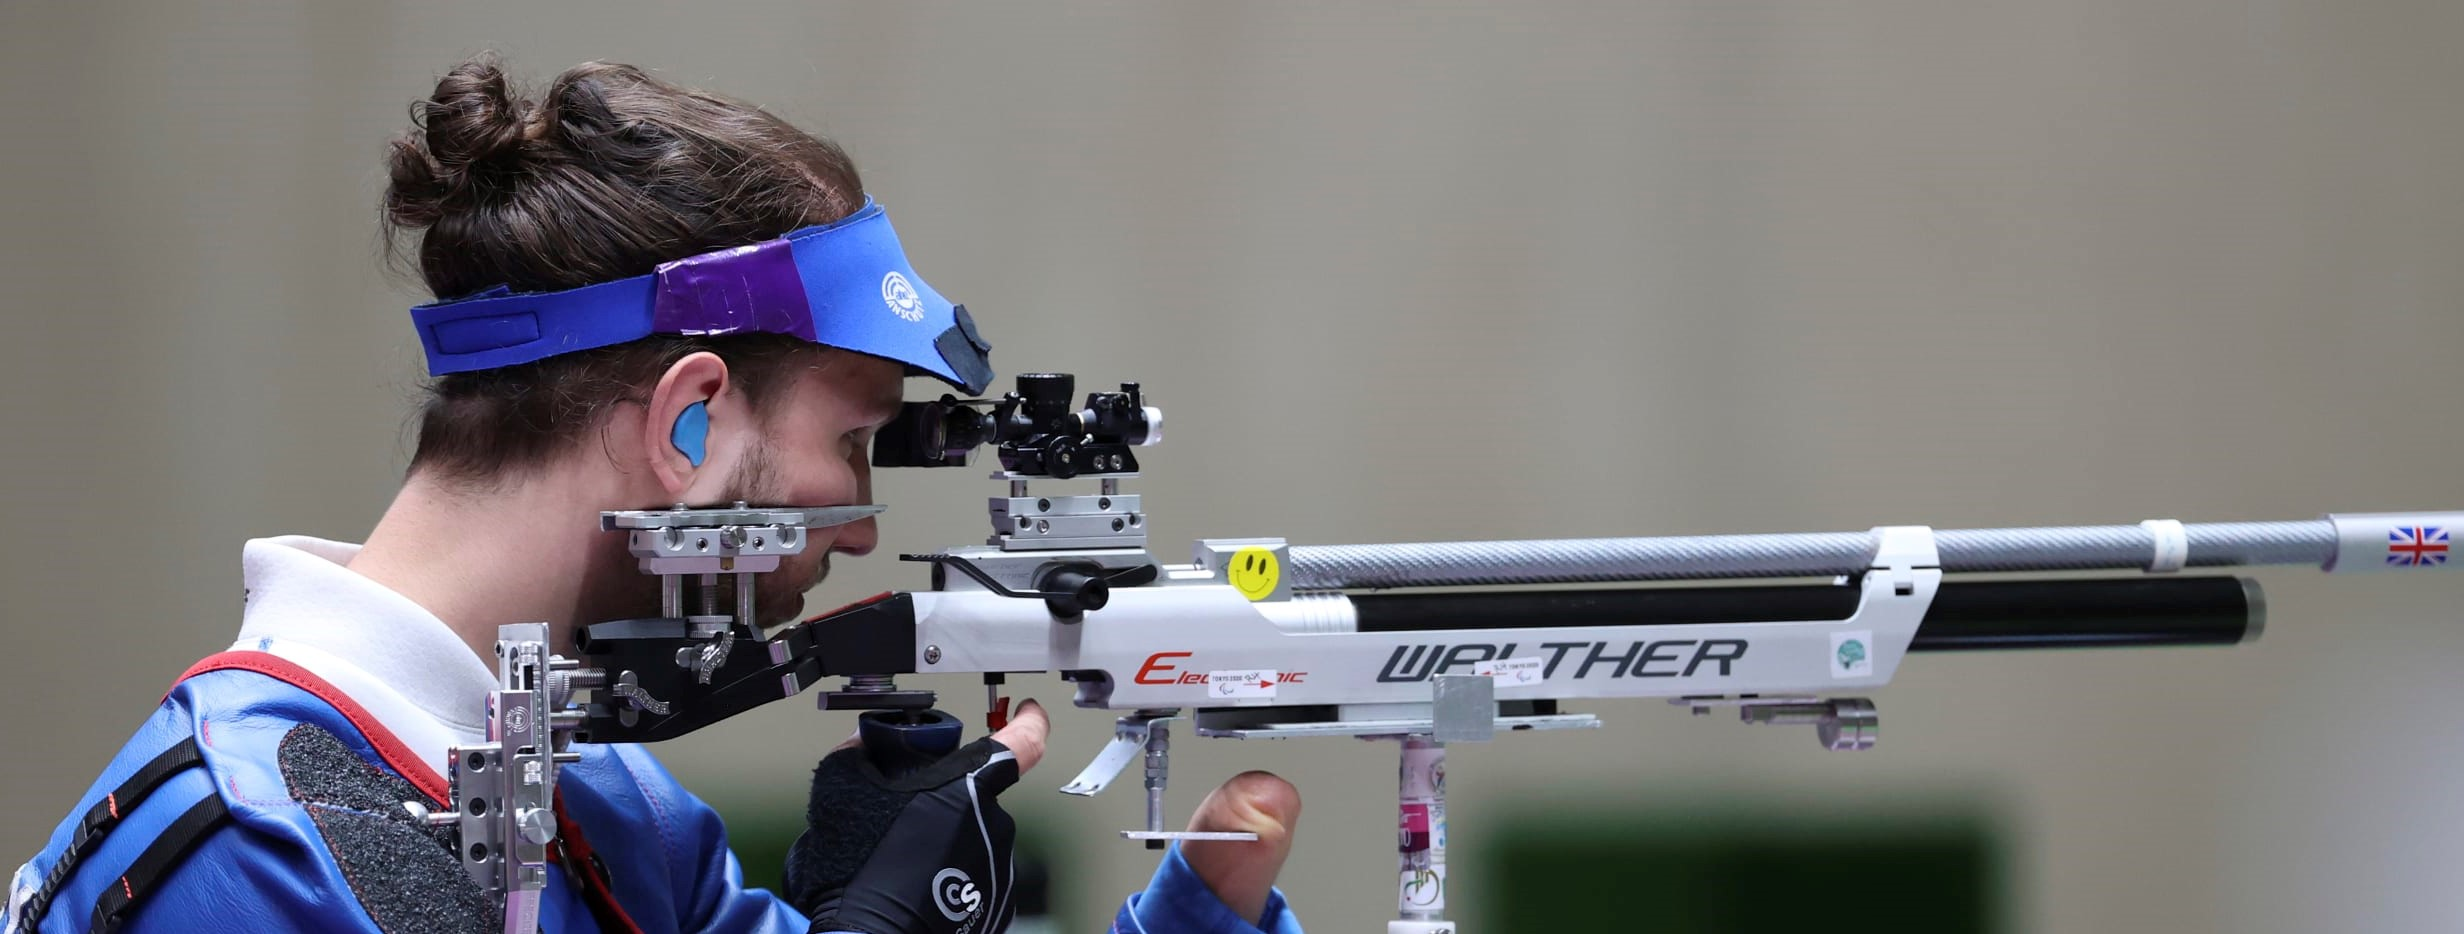 Get Kids Going! supported athlete Tim Jeffery reaches Paralympic finals in shooting